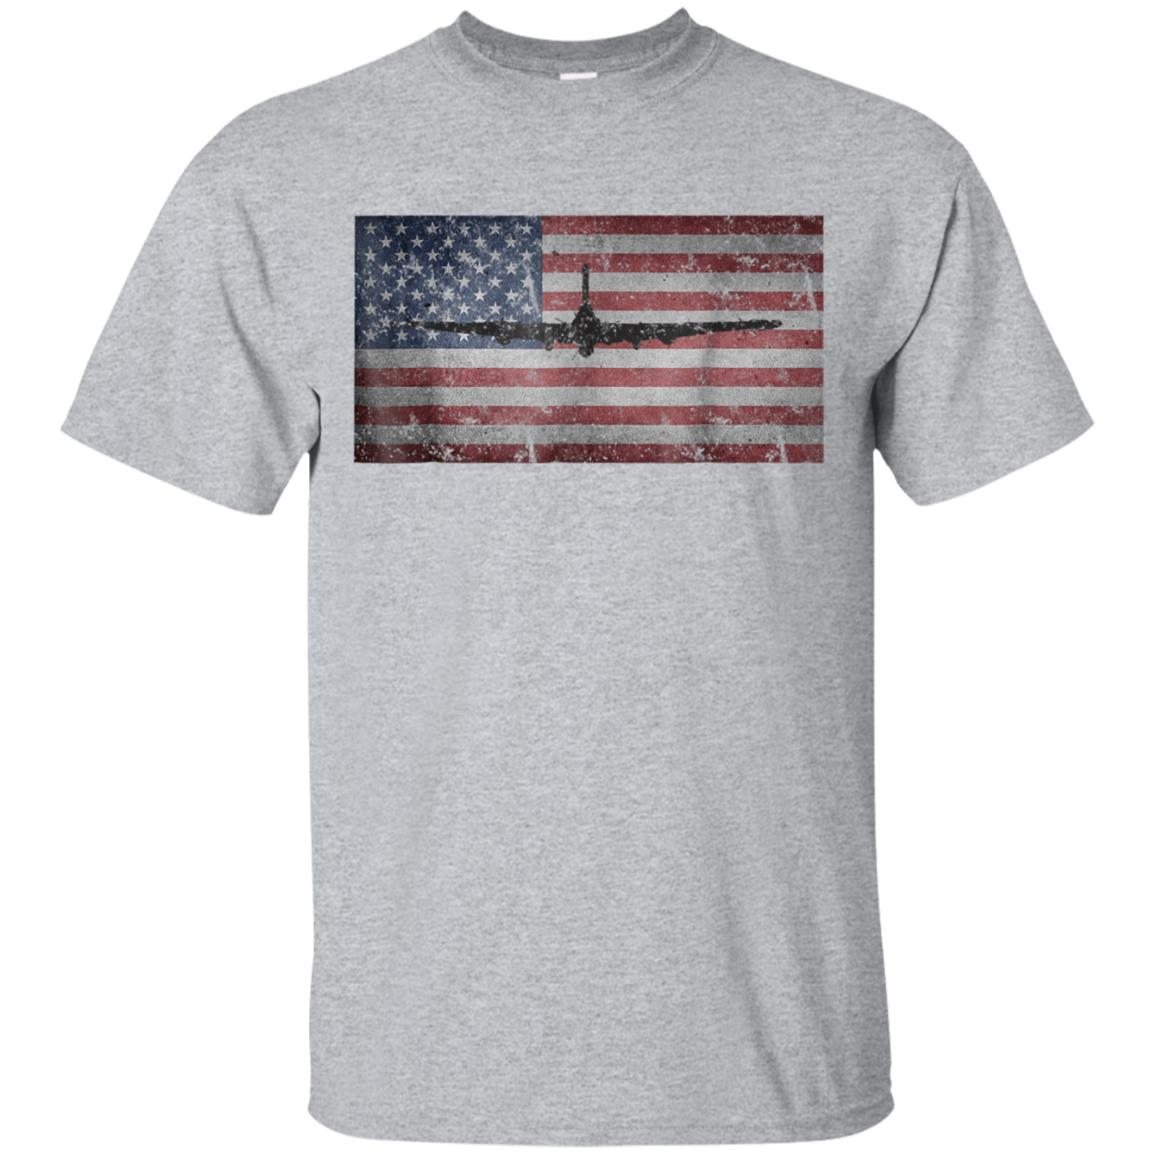 B-17 Flying Fortress Bomber T-Shirt American Flag Airplane 99promocode